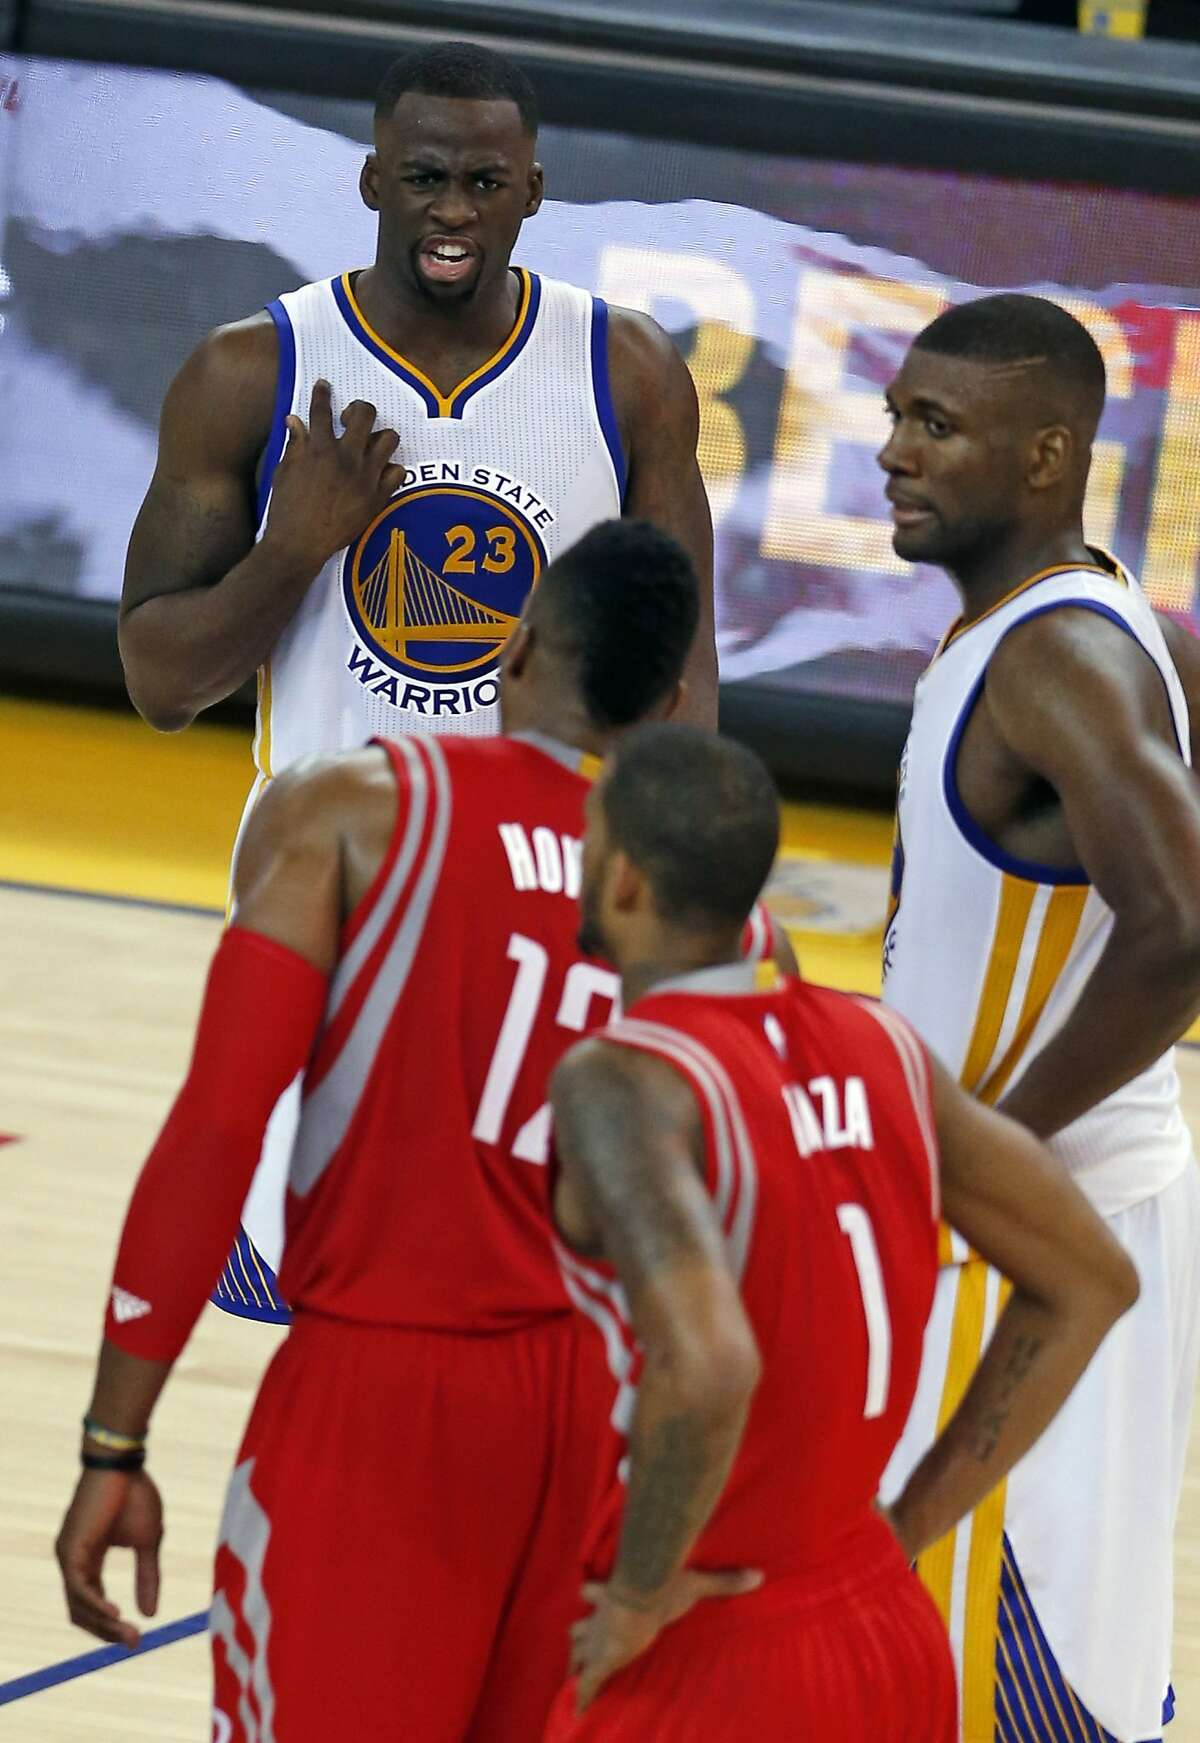 Golden State Warriors' Draymond Green has words for Houston Rockets' Dwight Howard after Howard fouled Andre Iguodala in 4th quarter in Game 5 of NBA Playoffs' Western Conference Finals at Oracle Arena in Oakland, Calif., on Wednesday, May 27, 2015.